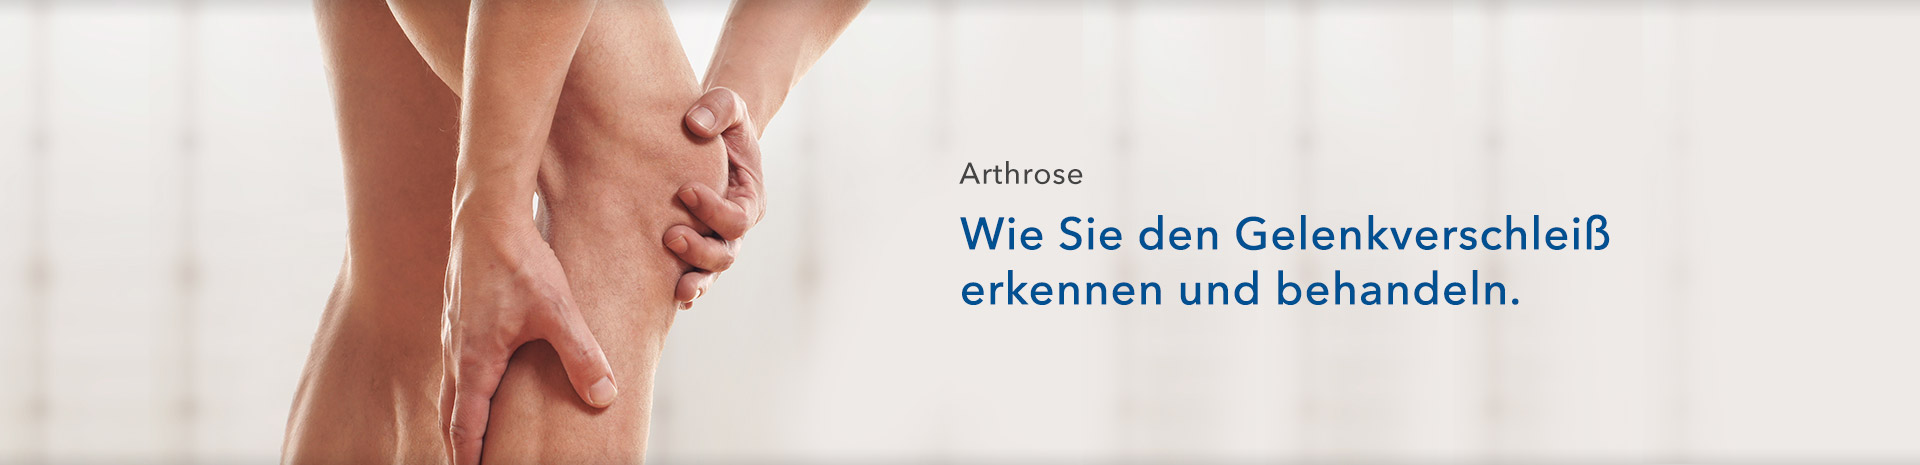 Arthrose – shop-apotheke.com